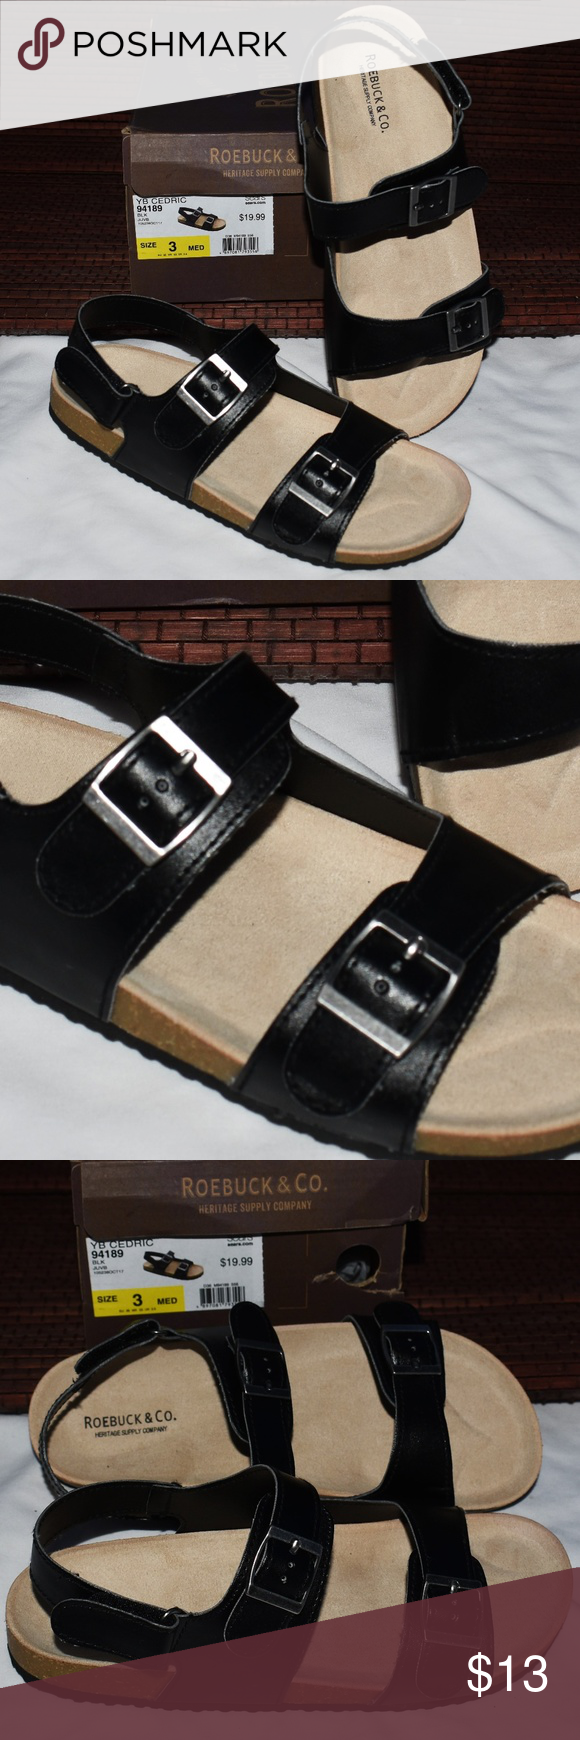 Strap sandals, Sears shoes, Girls sandals